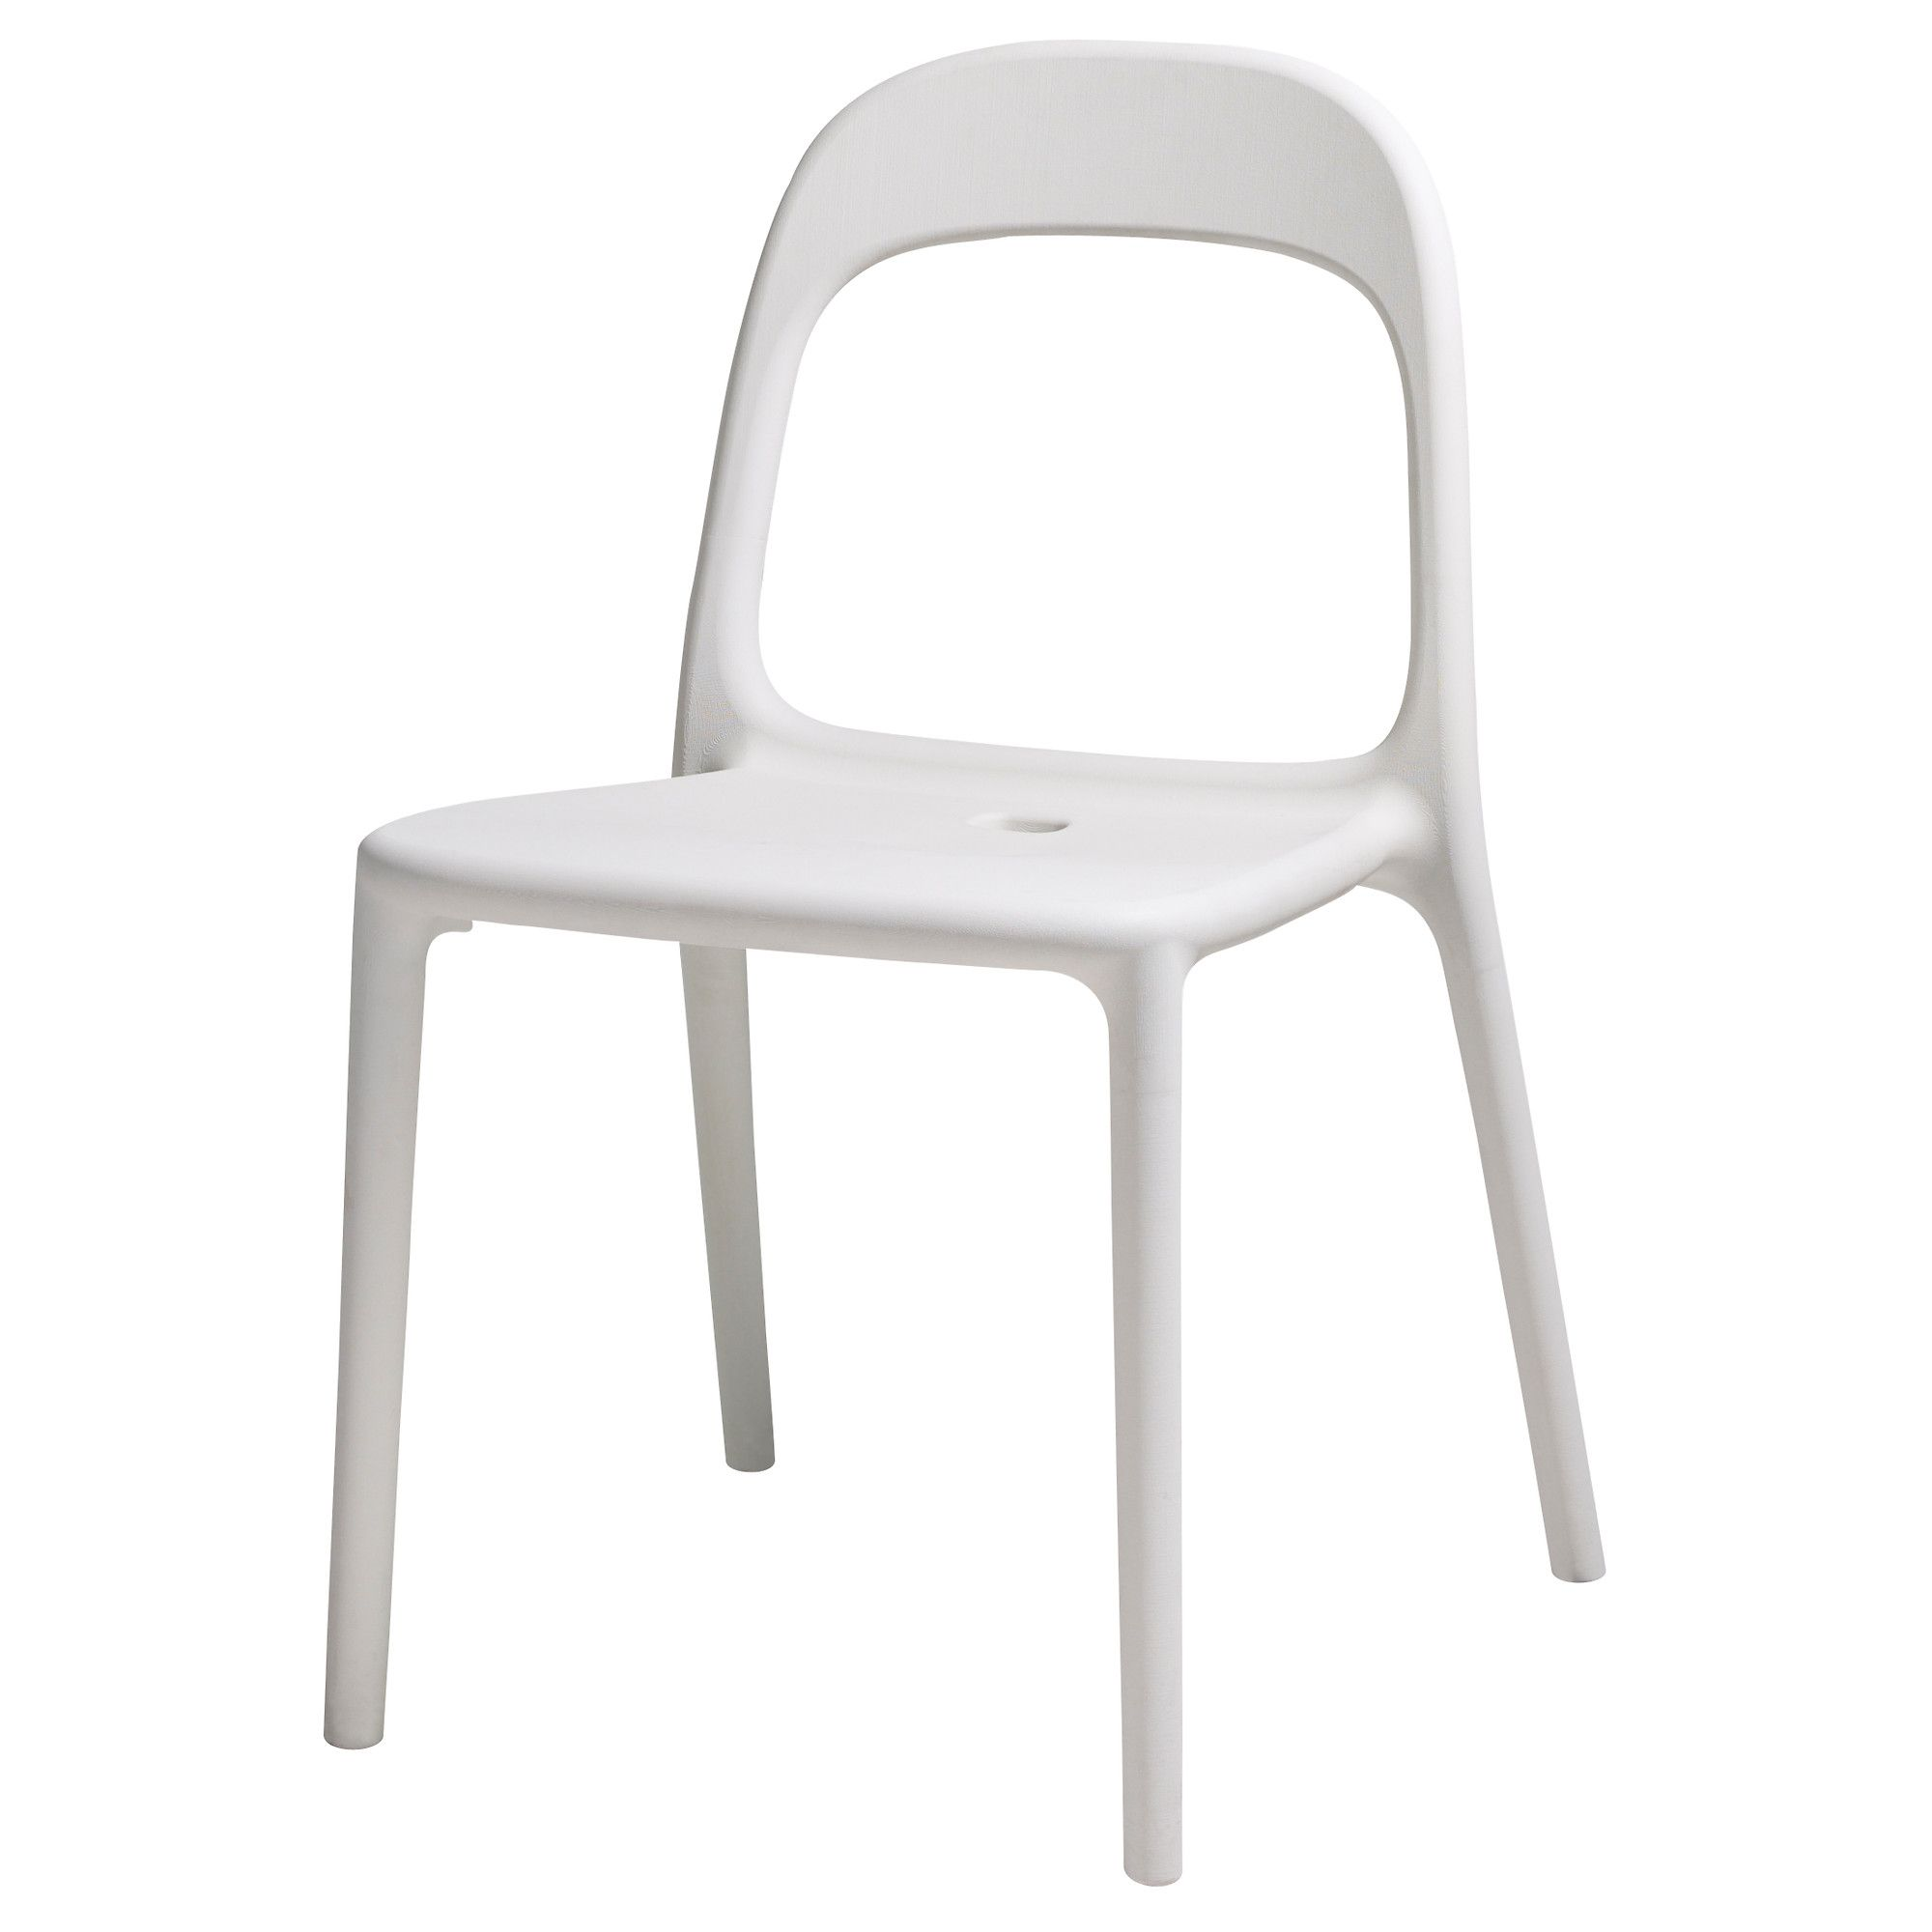 Still Love The Urban Chair At Ikea Could Be Great Patio Dining Chairs